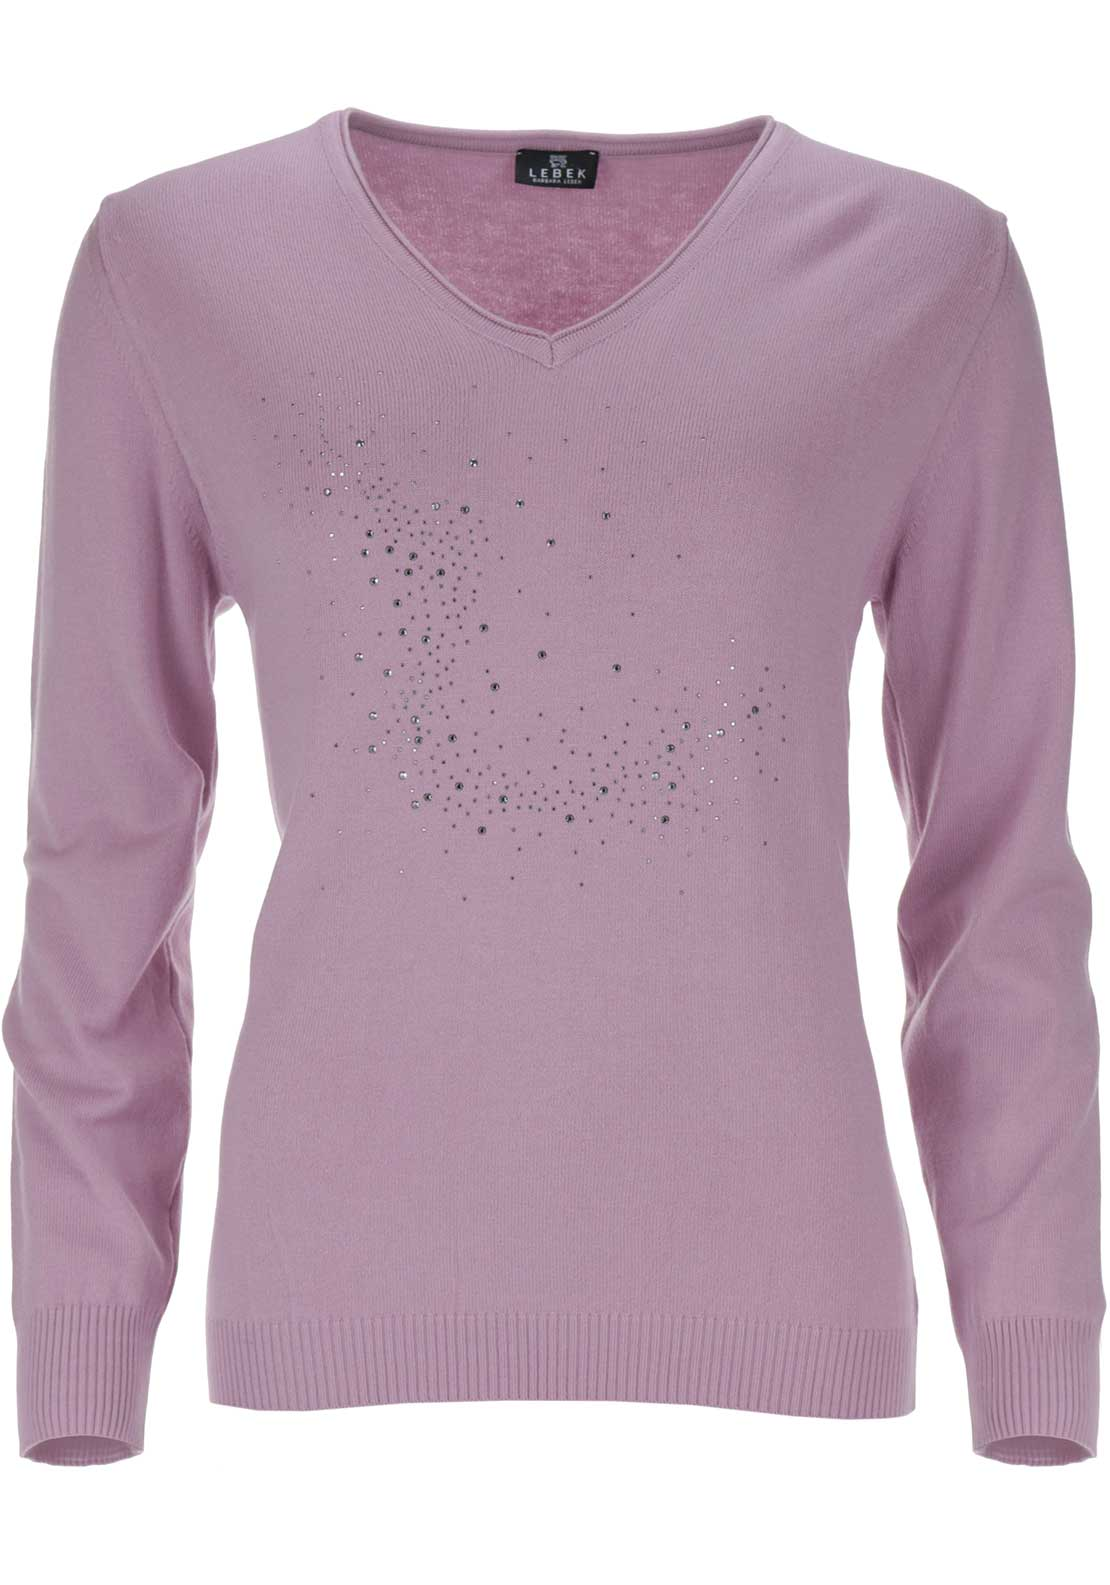 Lebek Embellished V-Neck Sweater Jumper, Pink